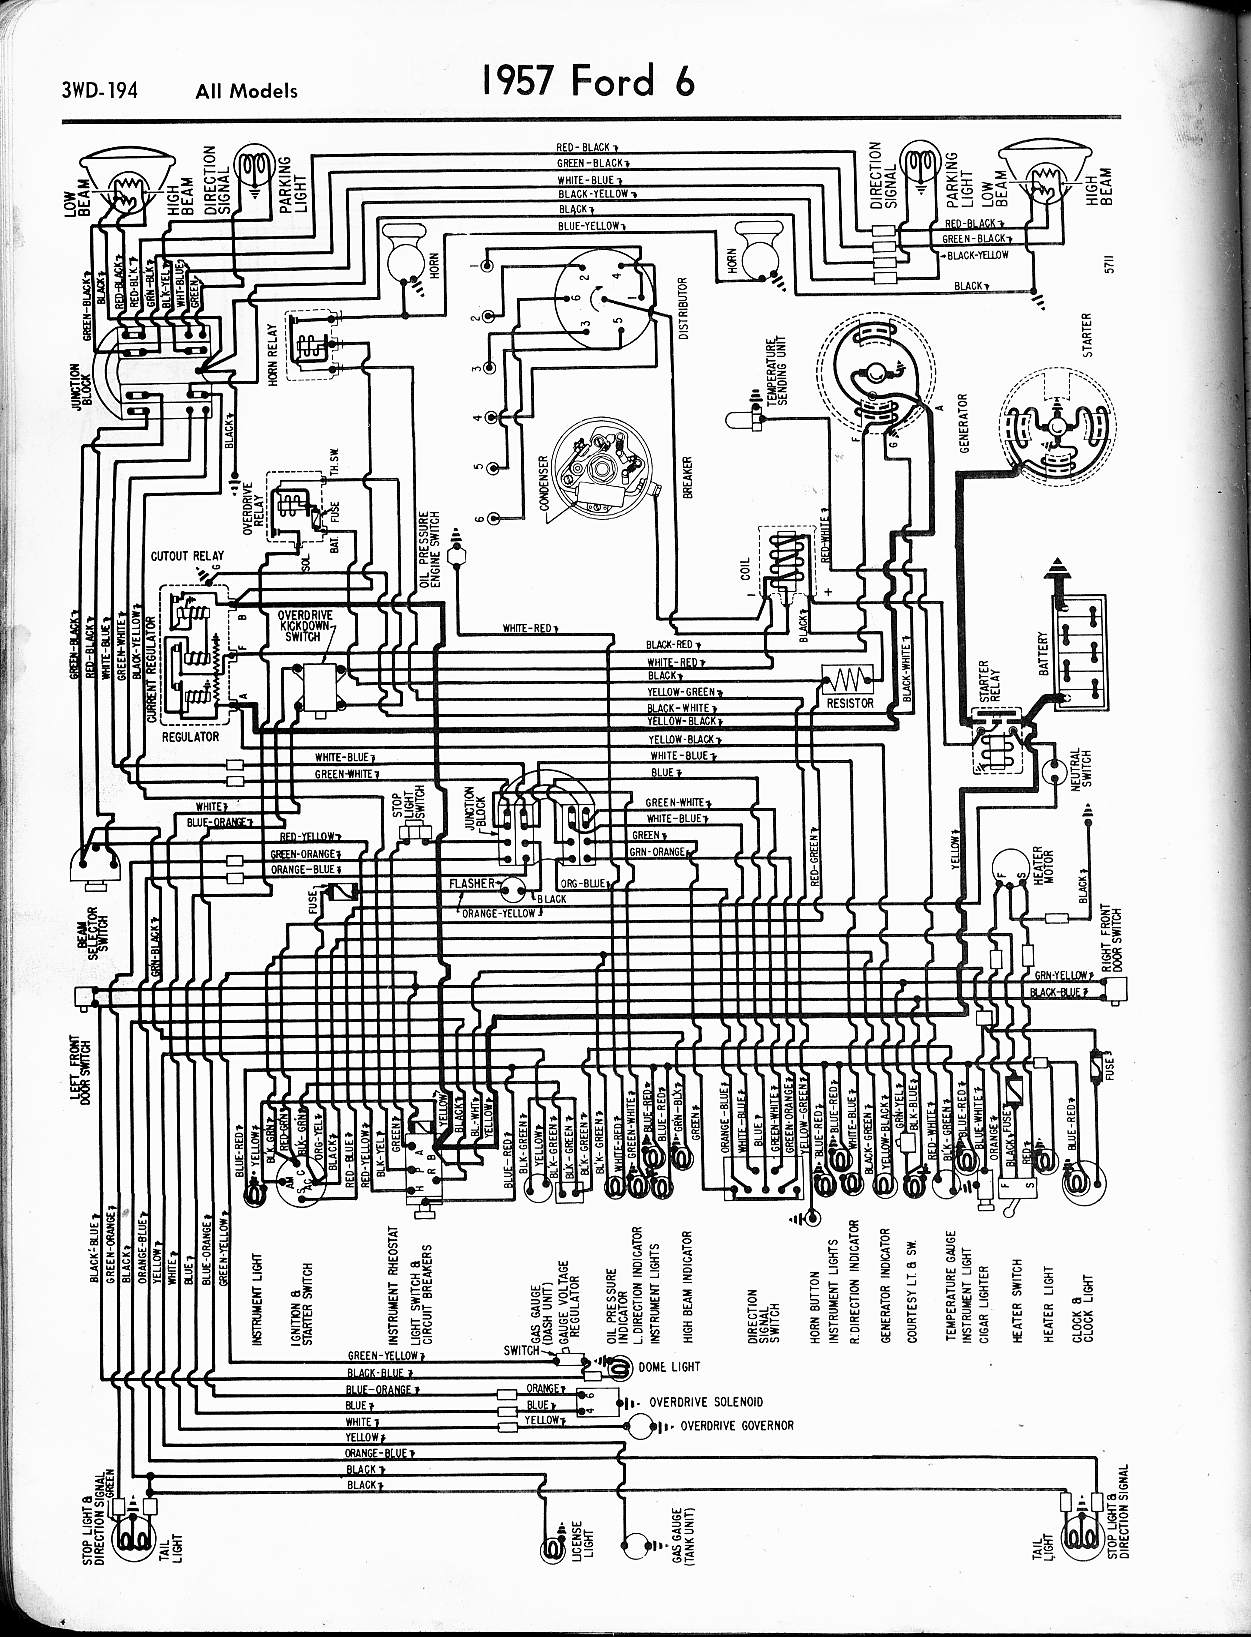 MWire5765 194 1955 ford wiring diagram 2014 dodge 2500 wiring diagram \u2022 free 1993 ford 545 tractor cab wiring diagram at creativeand.co